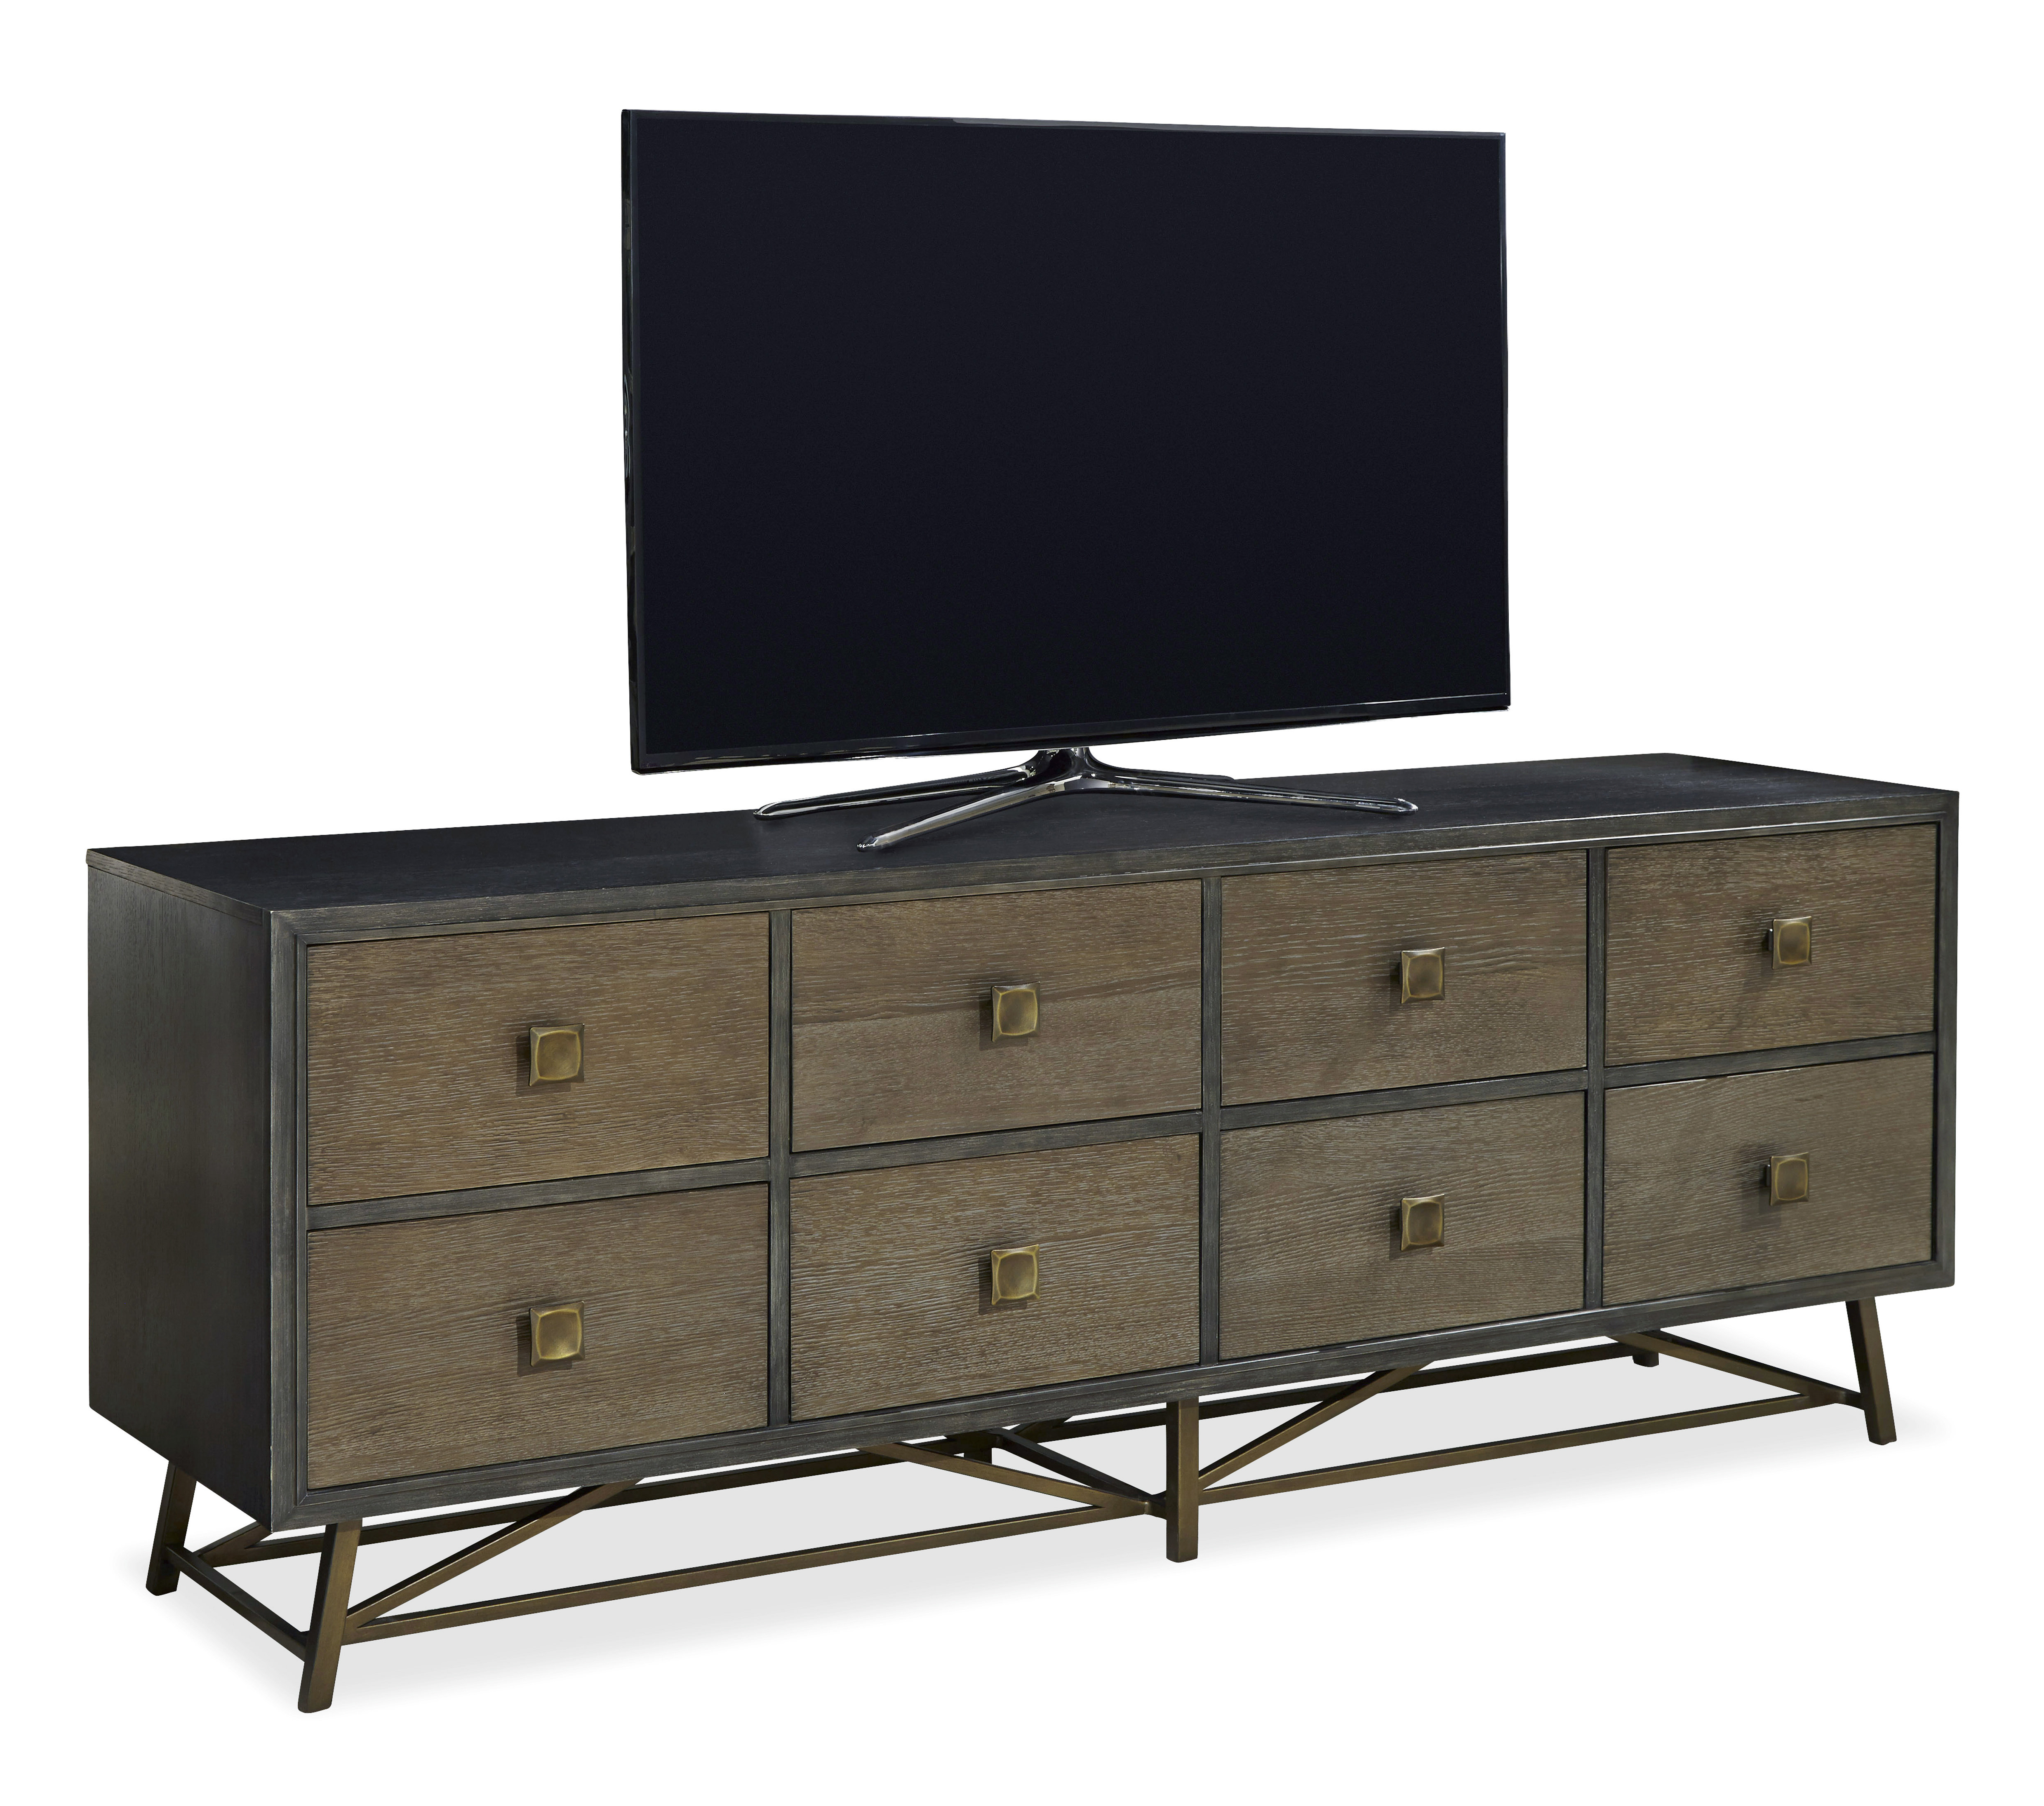 Best And Newest Canyon 74 Inch Tv Stands In 70 Inch Tv Stands (View 1 of 20)